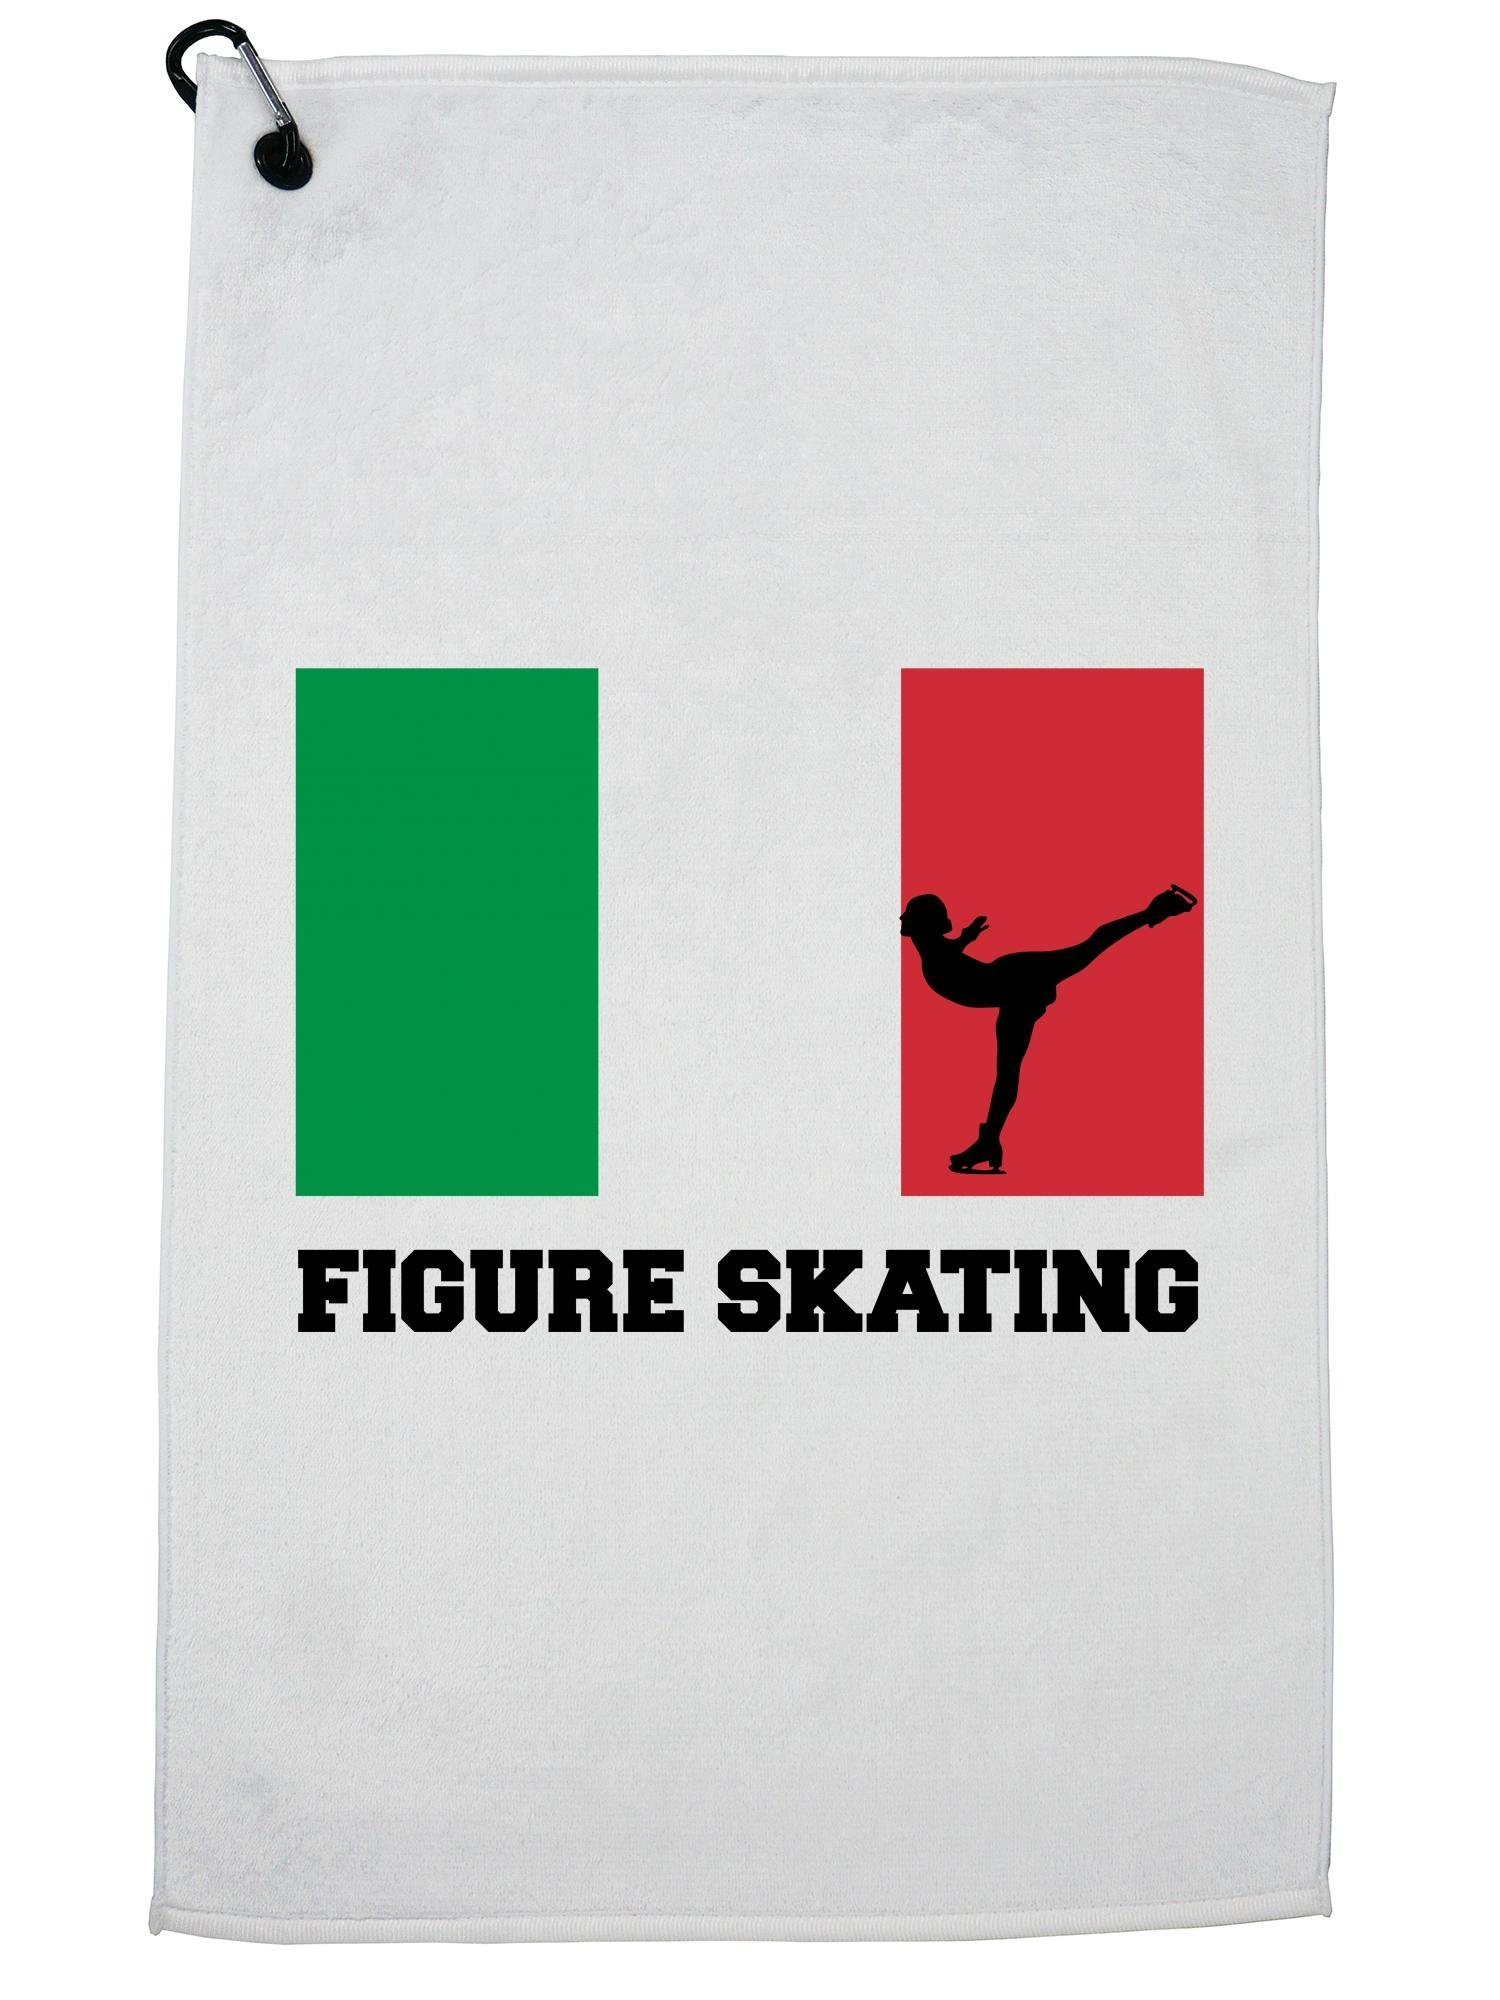 Hollywood Thread Italy Olympic - Figure Skating - Flag - Silhouette Golf Towel with Carabiner Clip